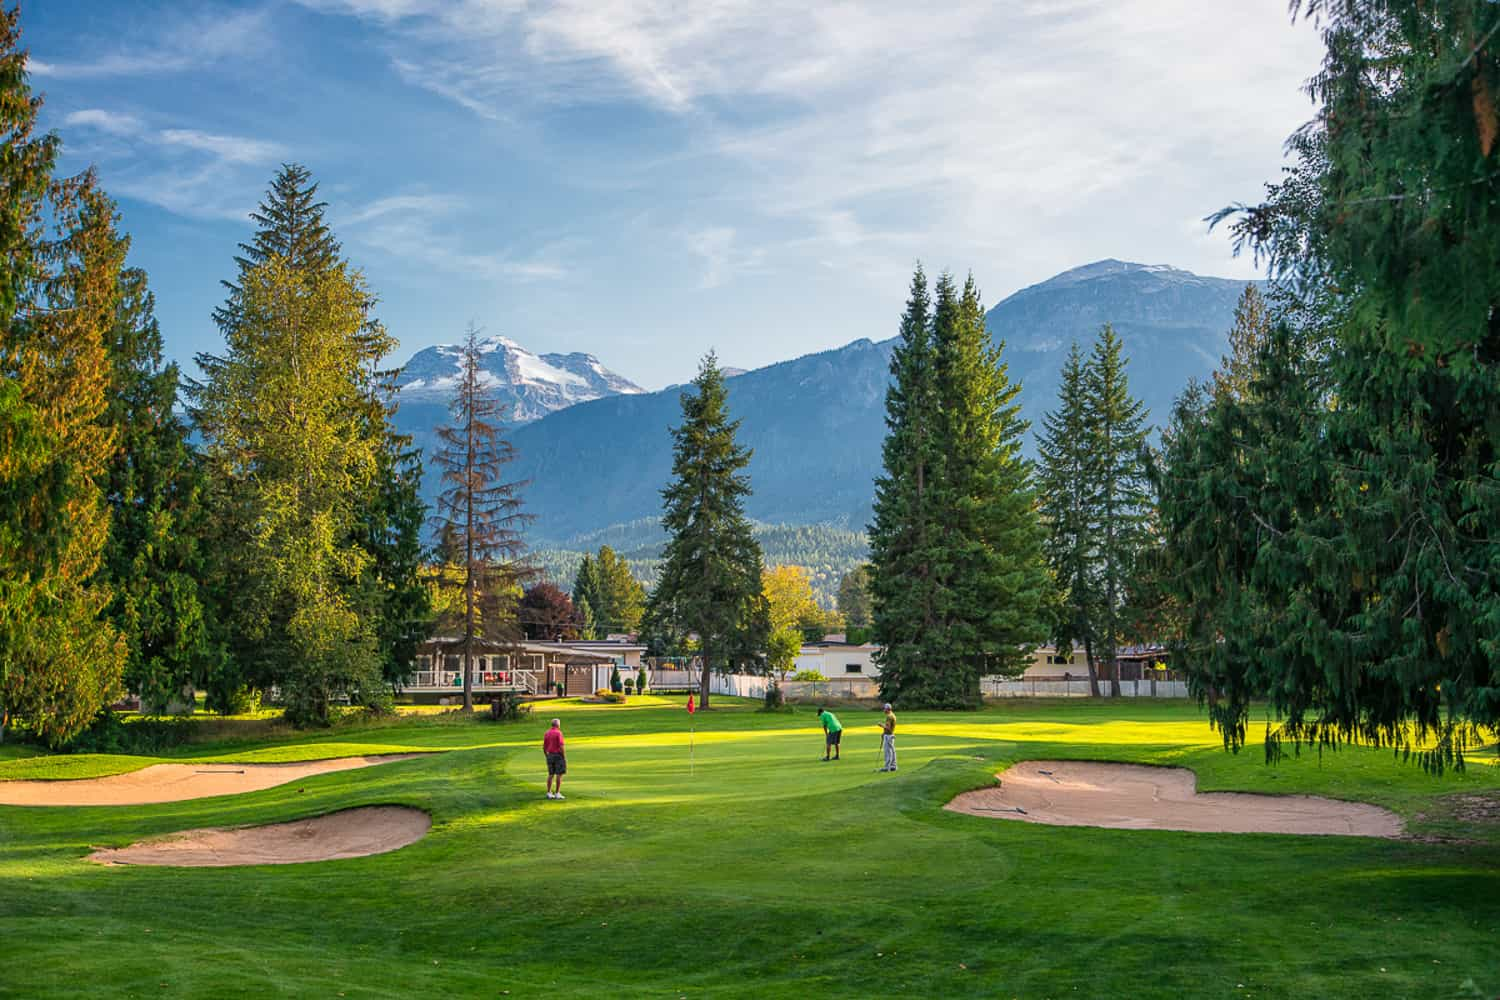 Golfing the front 9 at Revelstoke Golf Club